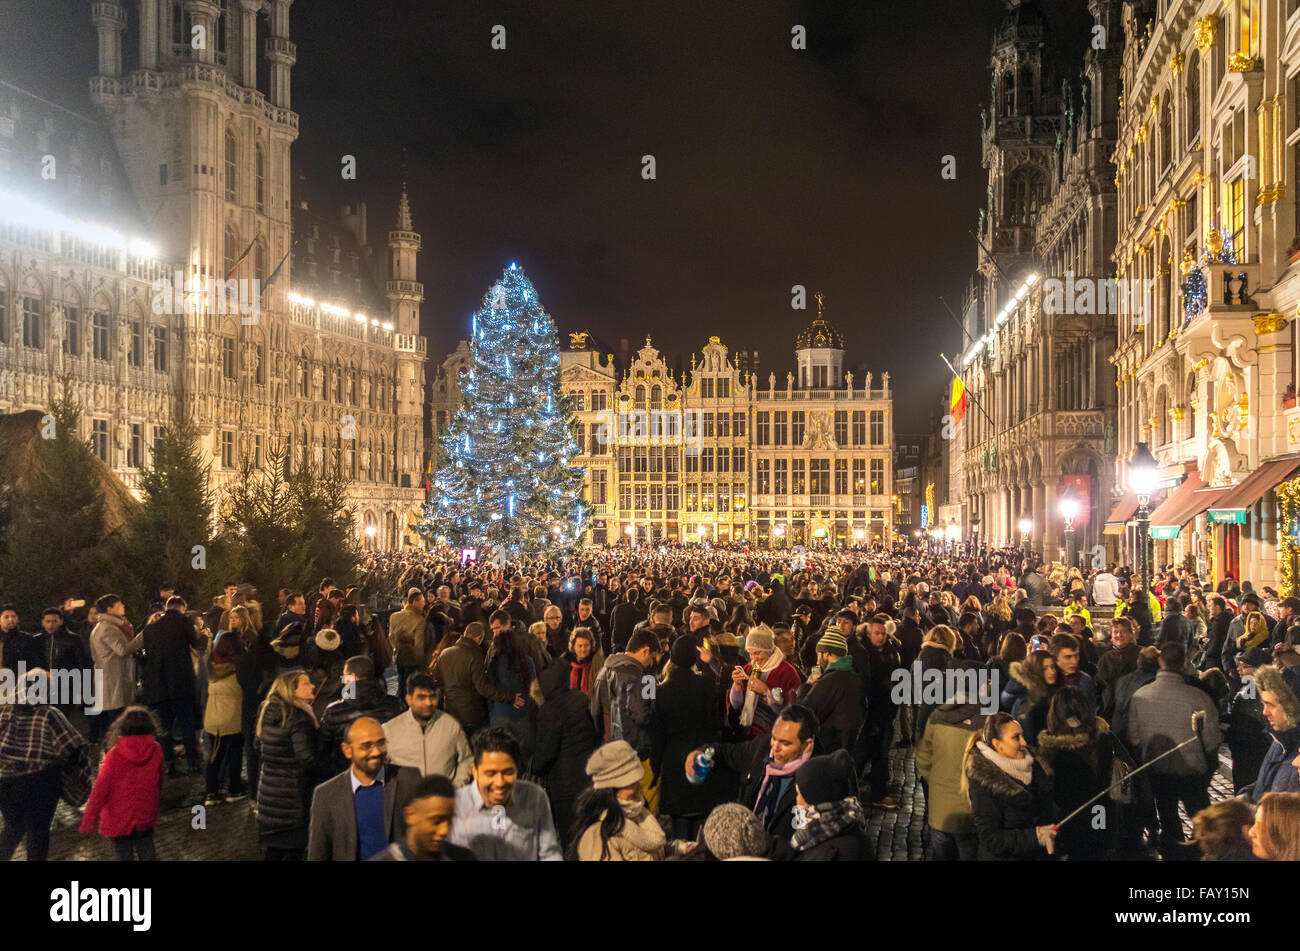 Brussels Grand Place New Year's Eve 2015-2016. At midnight. - Stock Image